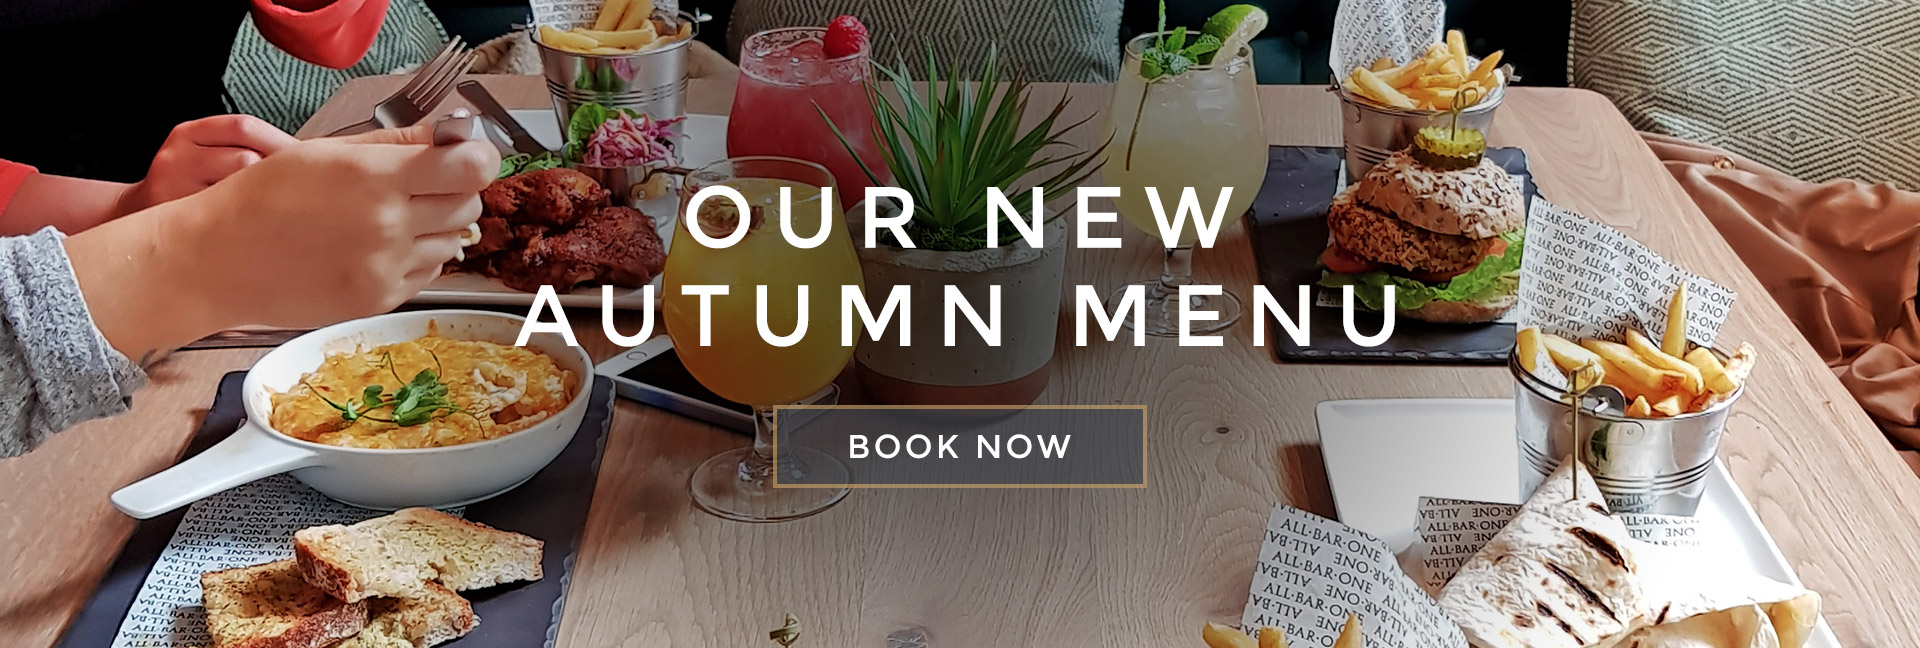 Our new Autumn menu at All Bar One Nottingham - Book now